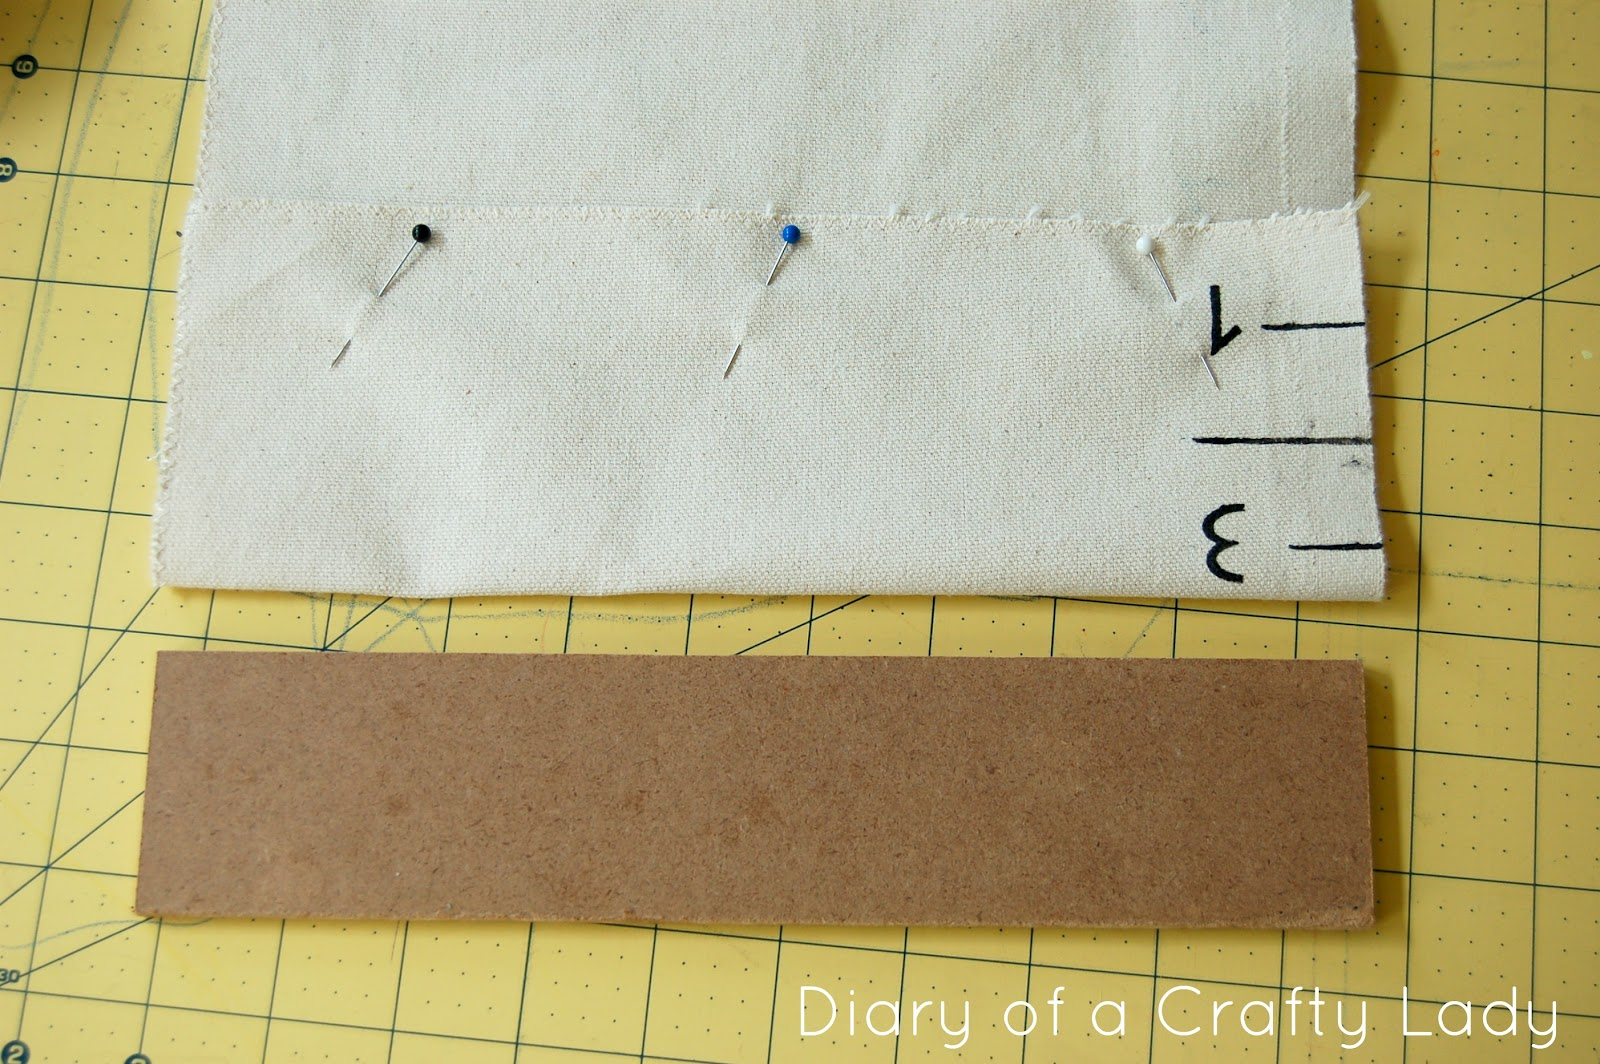 Diary of a crafty lady diy canvas growth chart i cut of the excess fabric from the top i decided i wanted mine barely over 6 tall and then sewed the top under to make a smaller loop geenschuldenfo Images